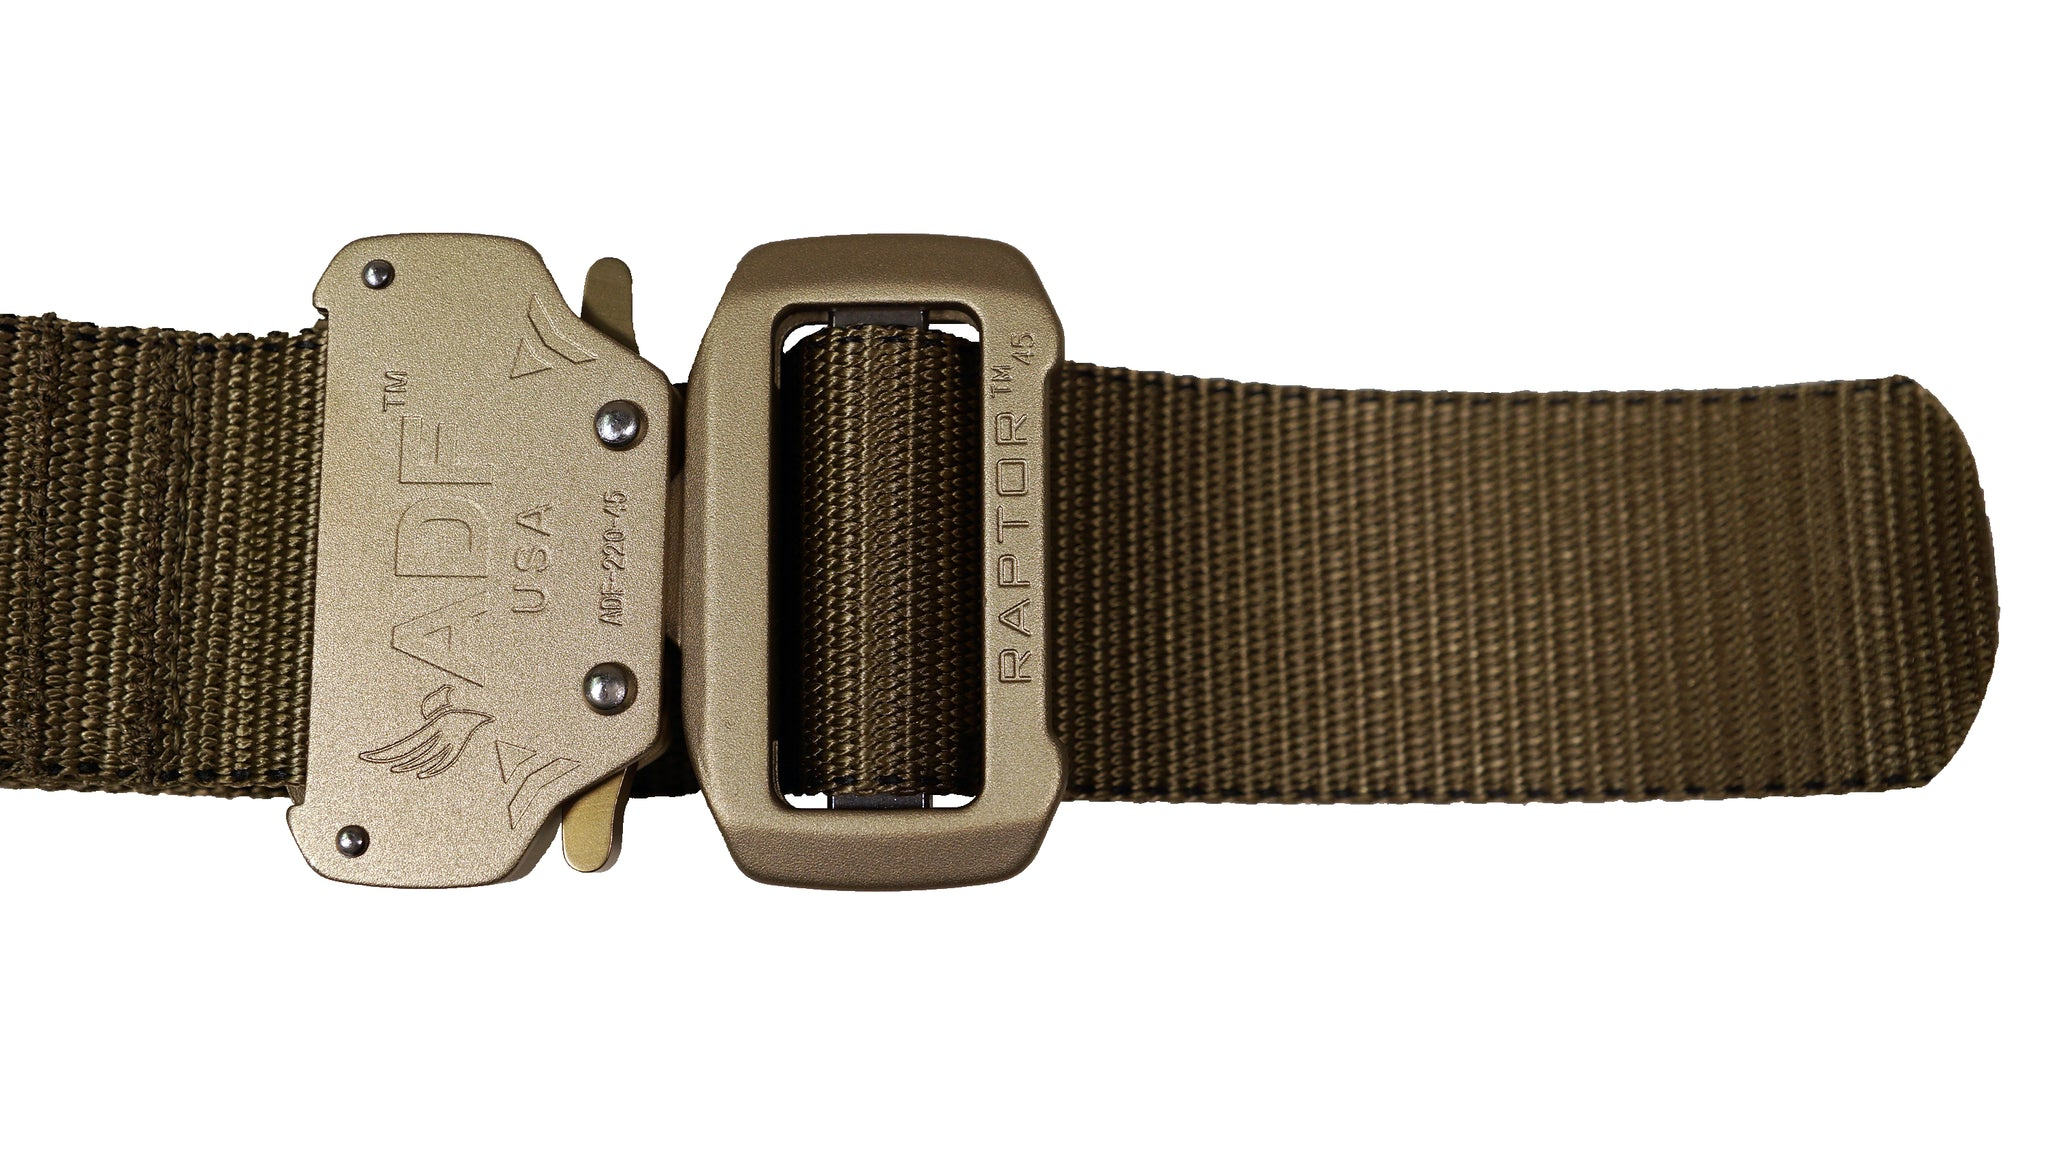 Tan/Coyote DBF Belt: Zoomed-in view of Raptor buckle with rivets and quick release latches.